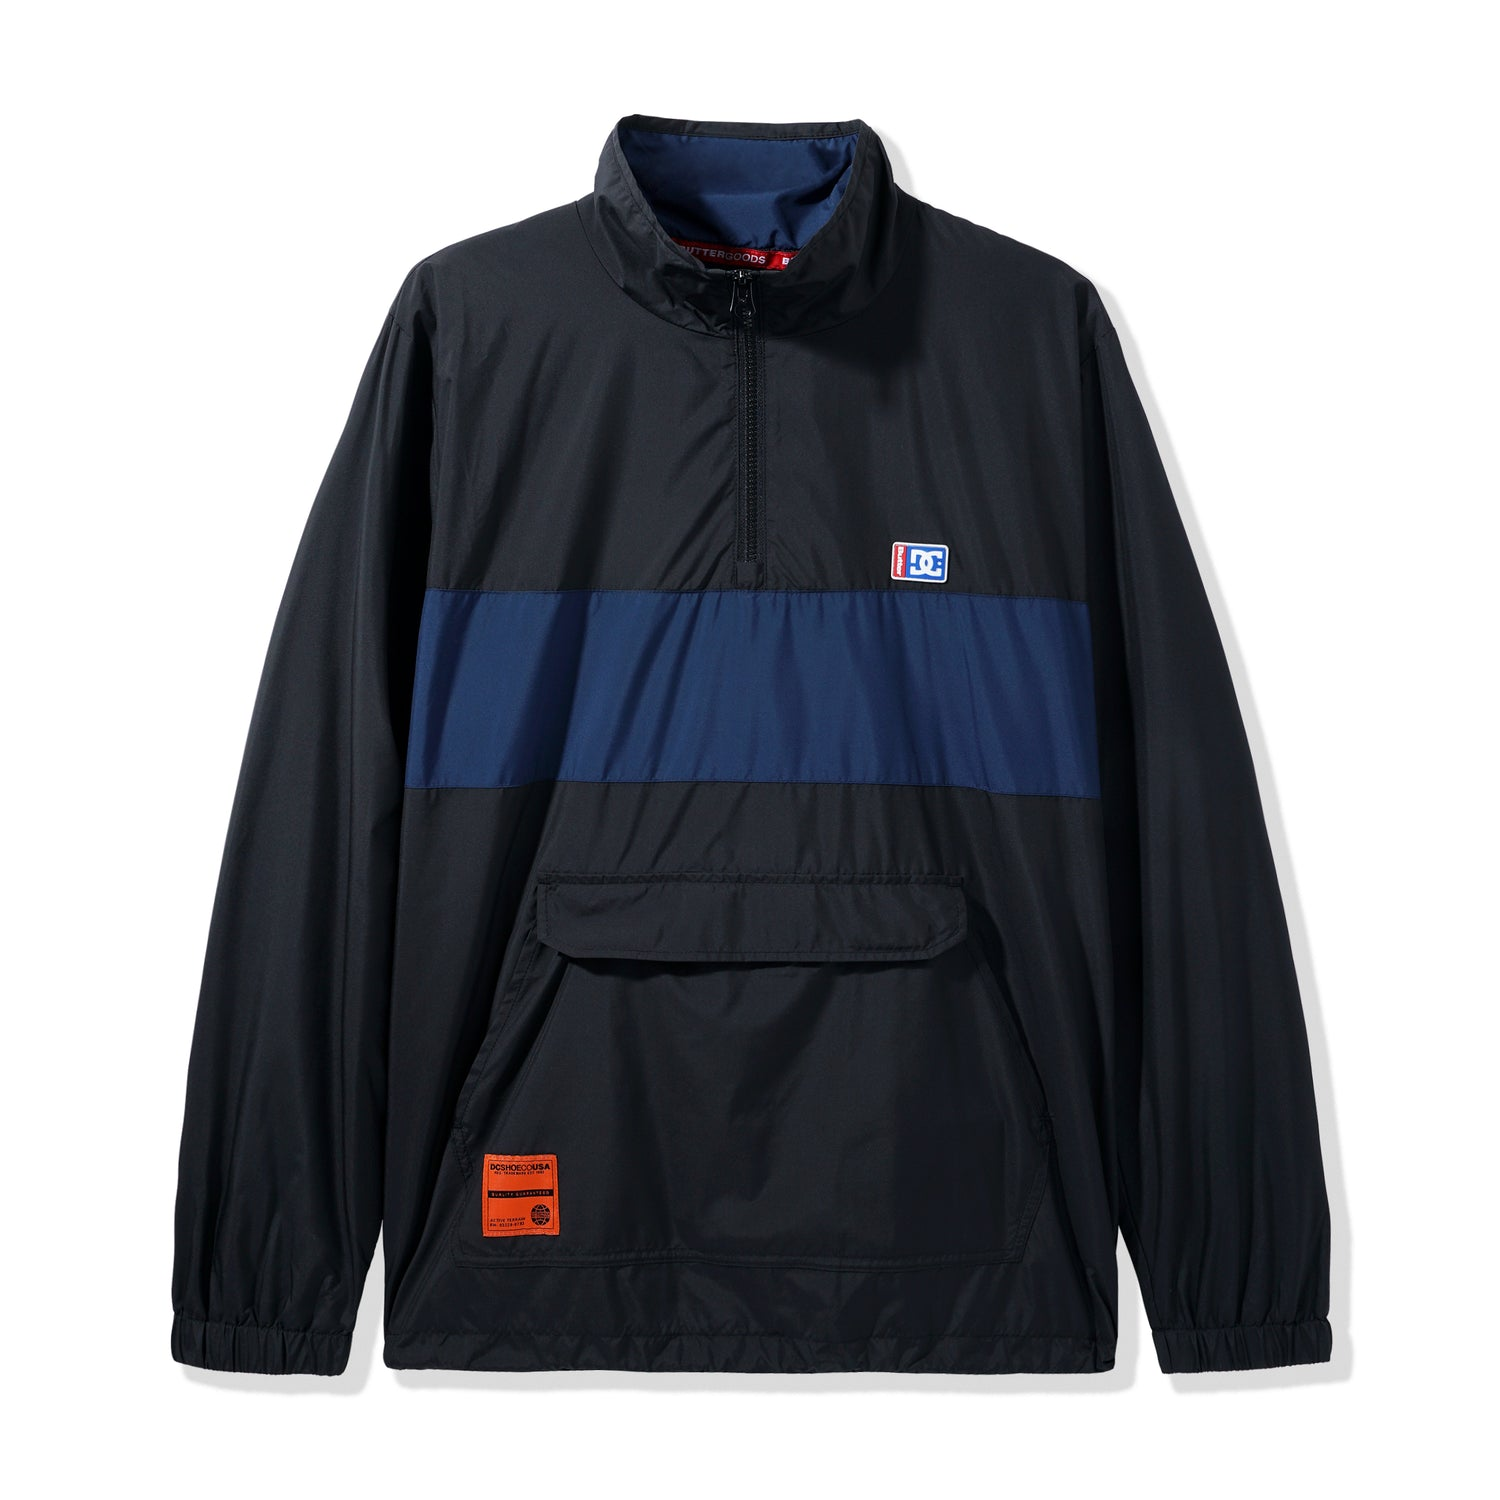 Luther Jacket, Black